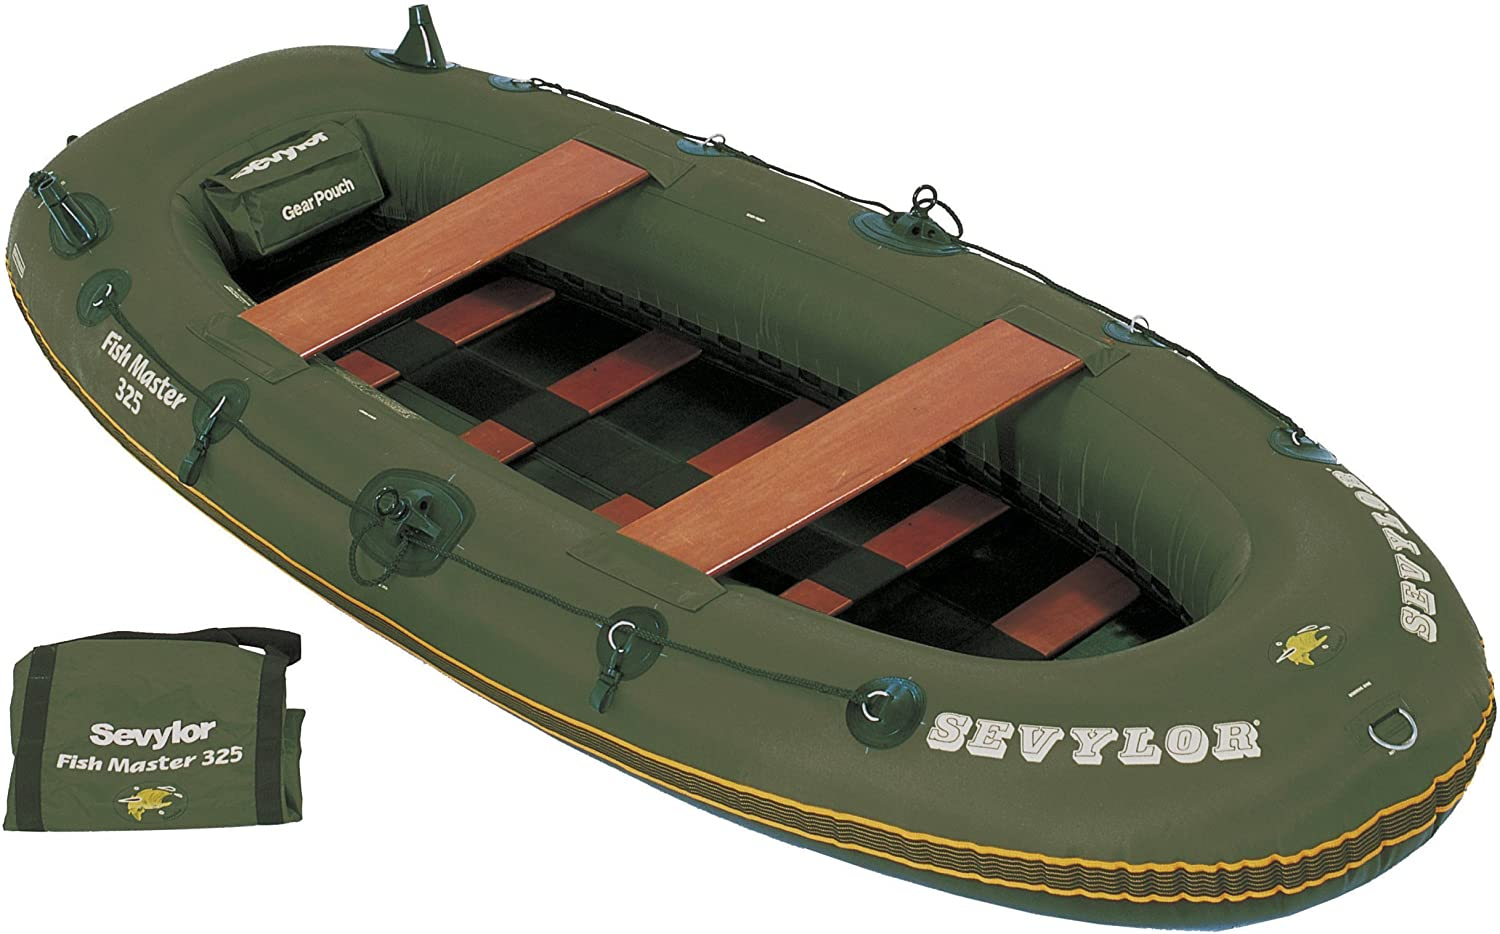 Amazon.com: Sevylor pescado Master 325 Barco Inflable con 2 ...